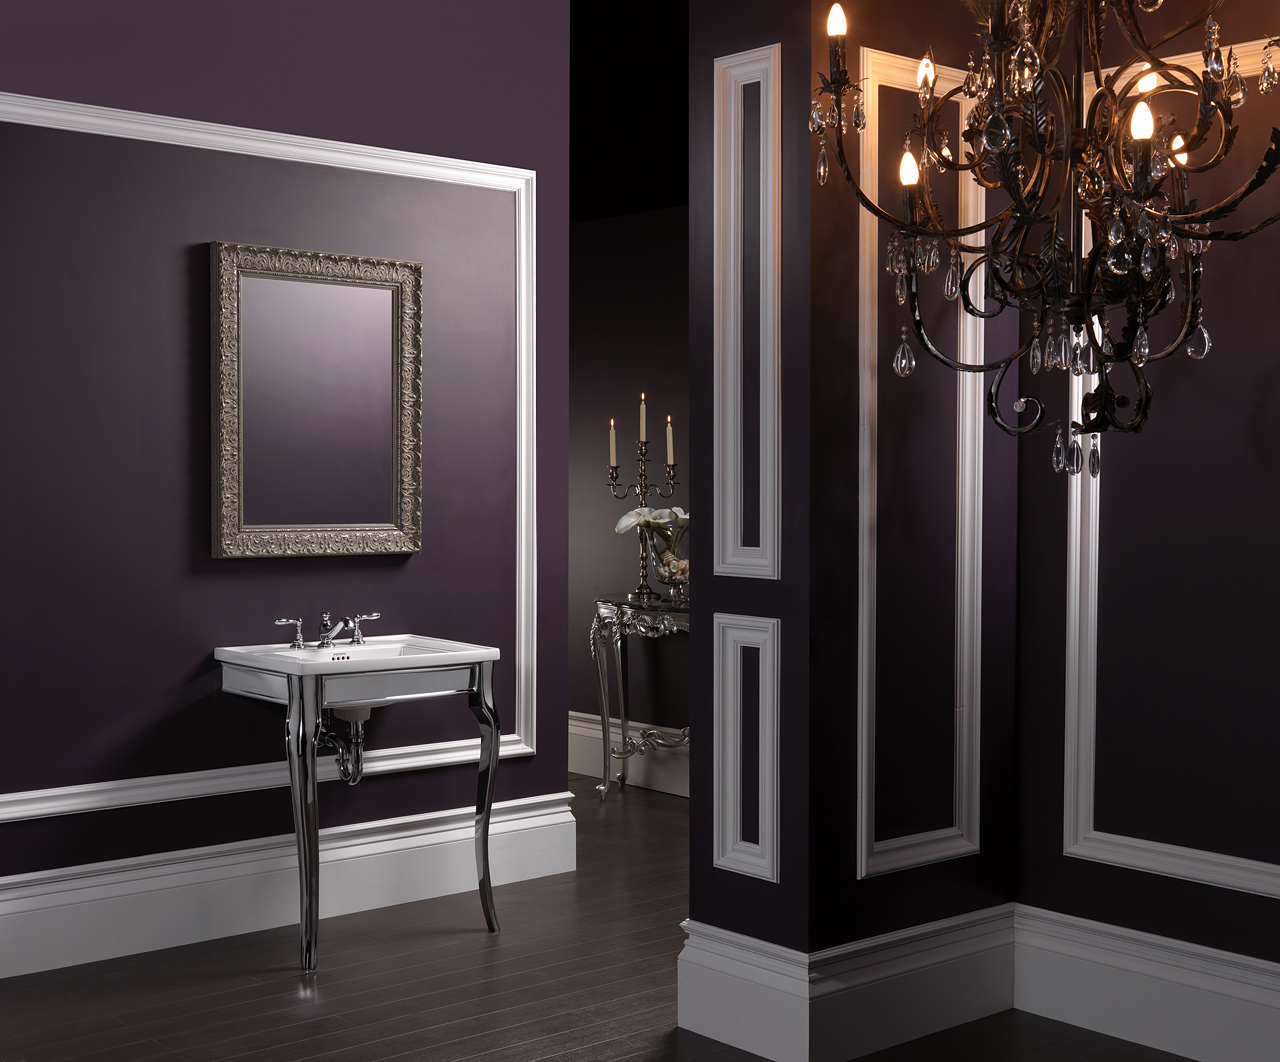 Classic Bathrooms: Imperial Bathrooms - Camilla